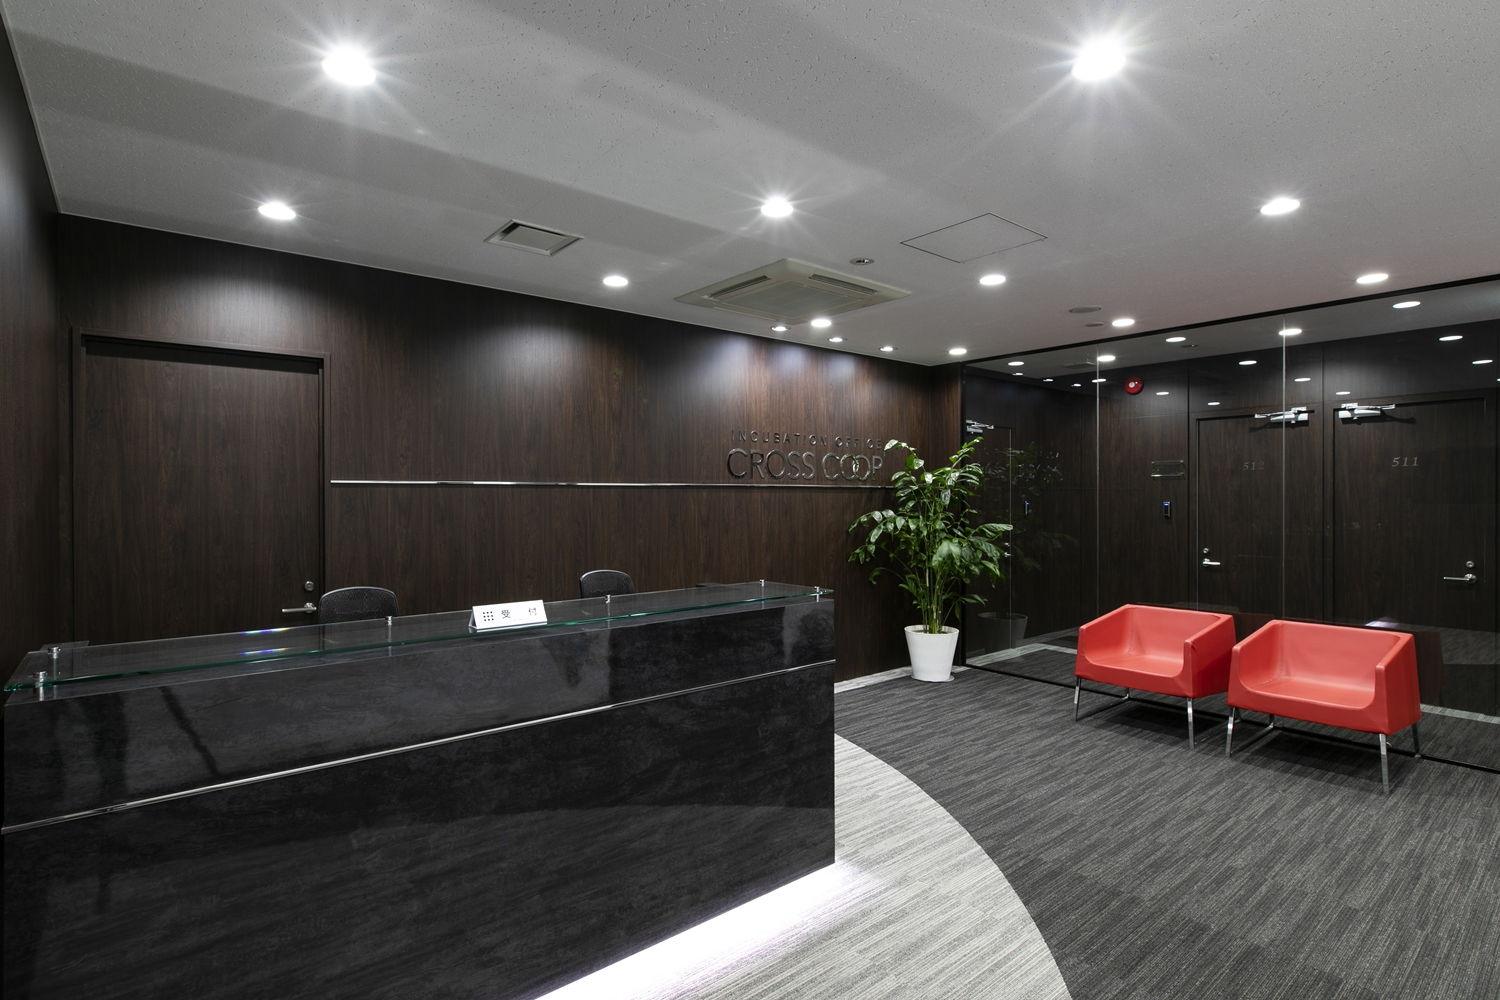 Reception area at Roppongi office